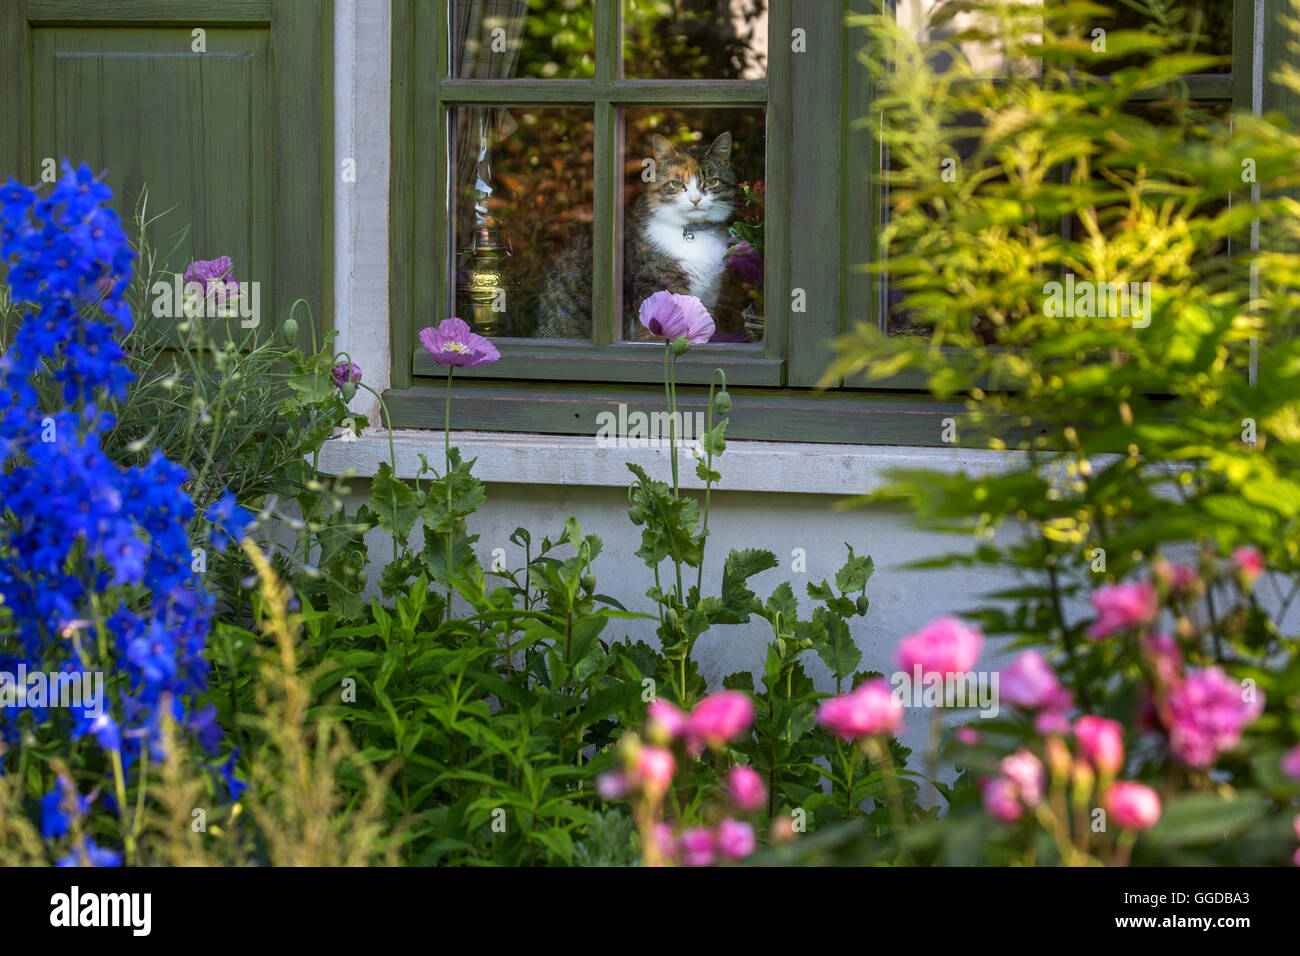 Domestic cat sitting in house and looking through window over garden in summer - Stock Image